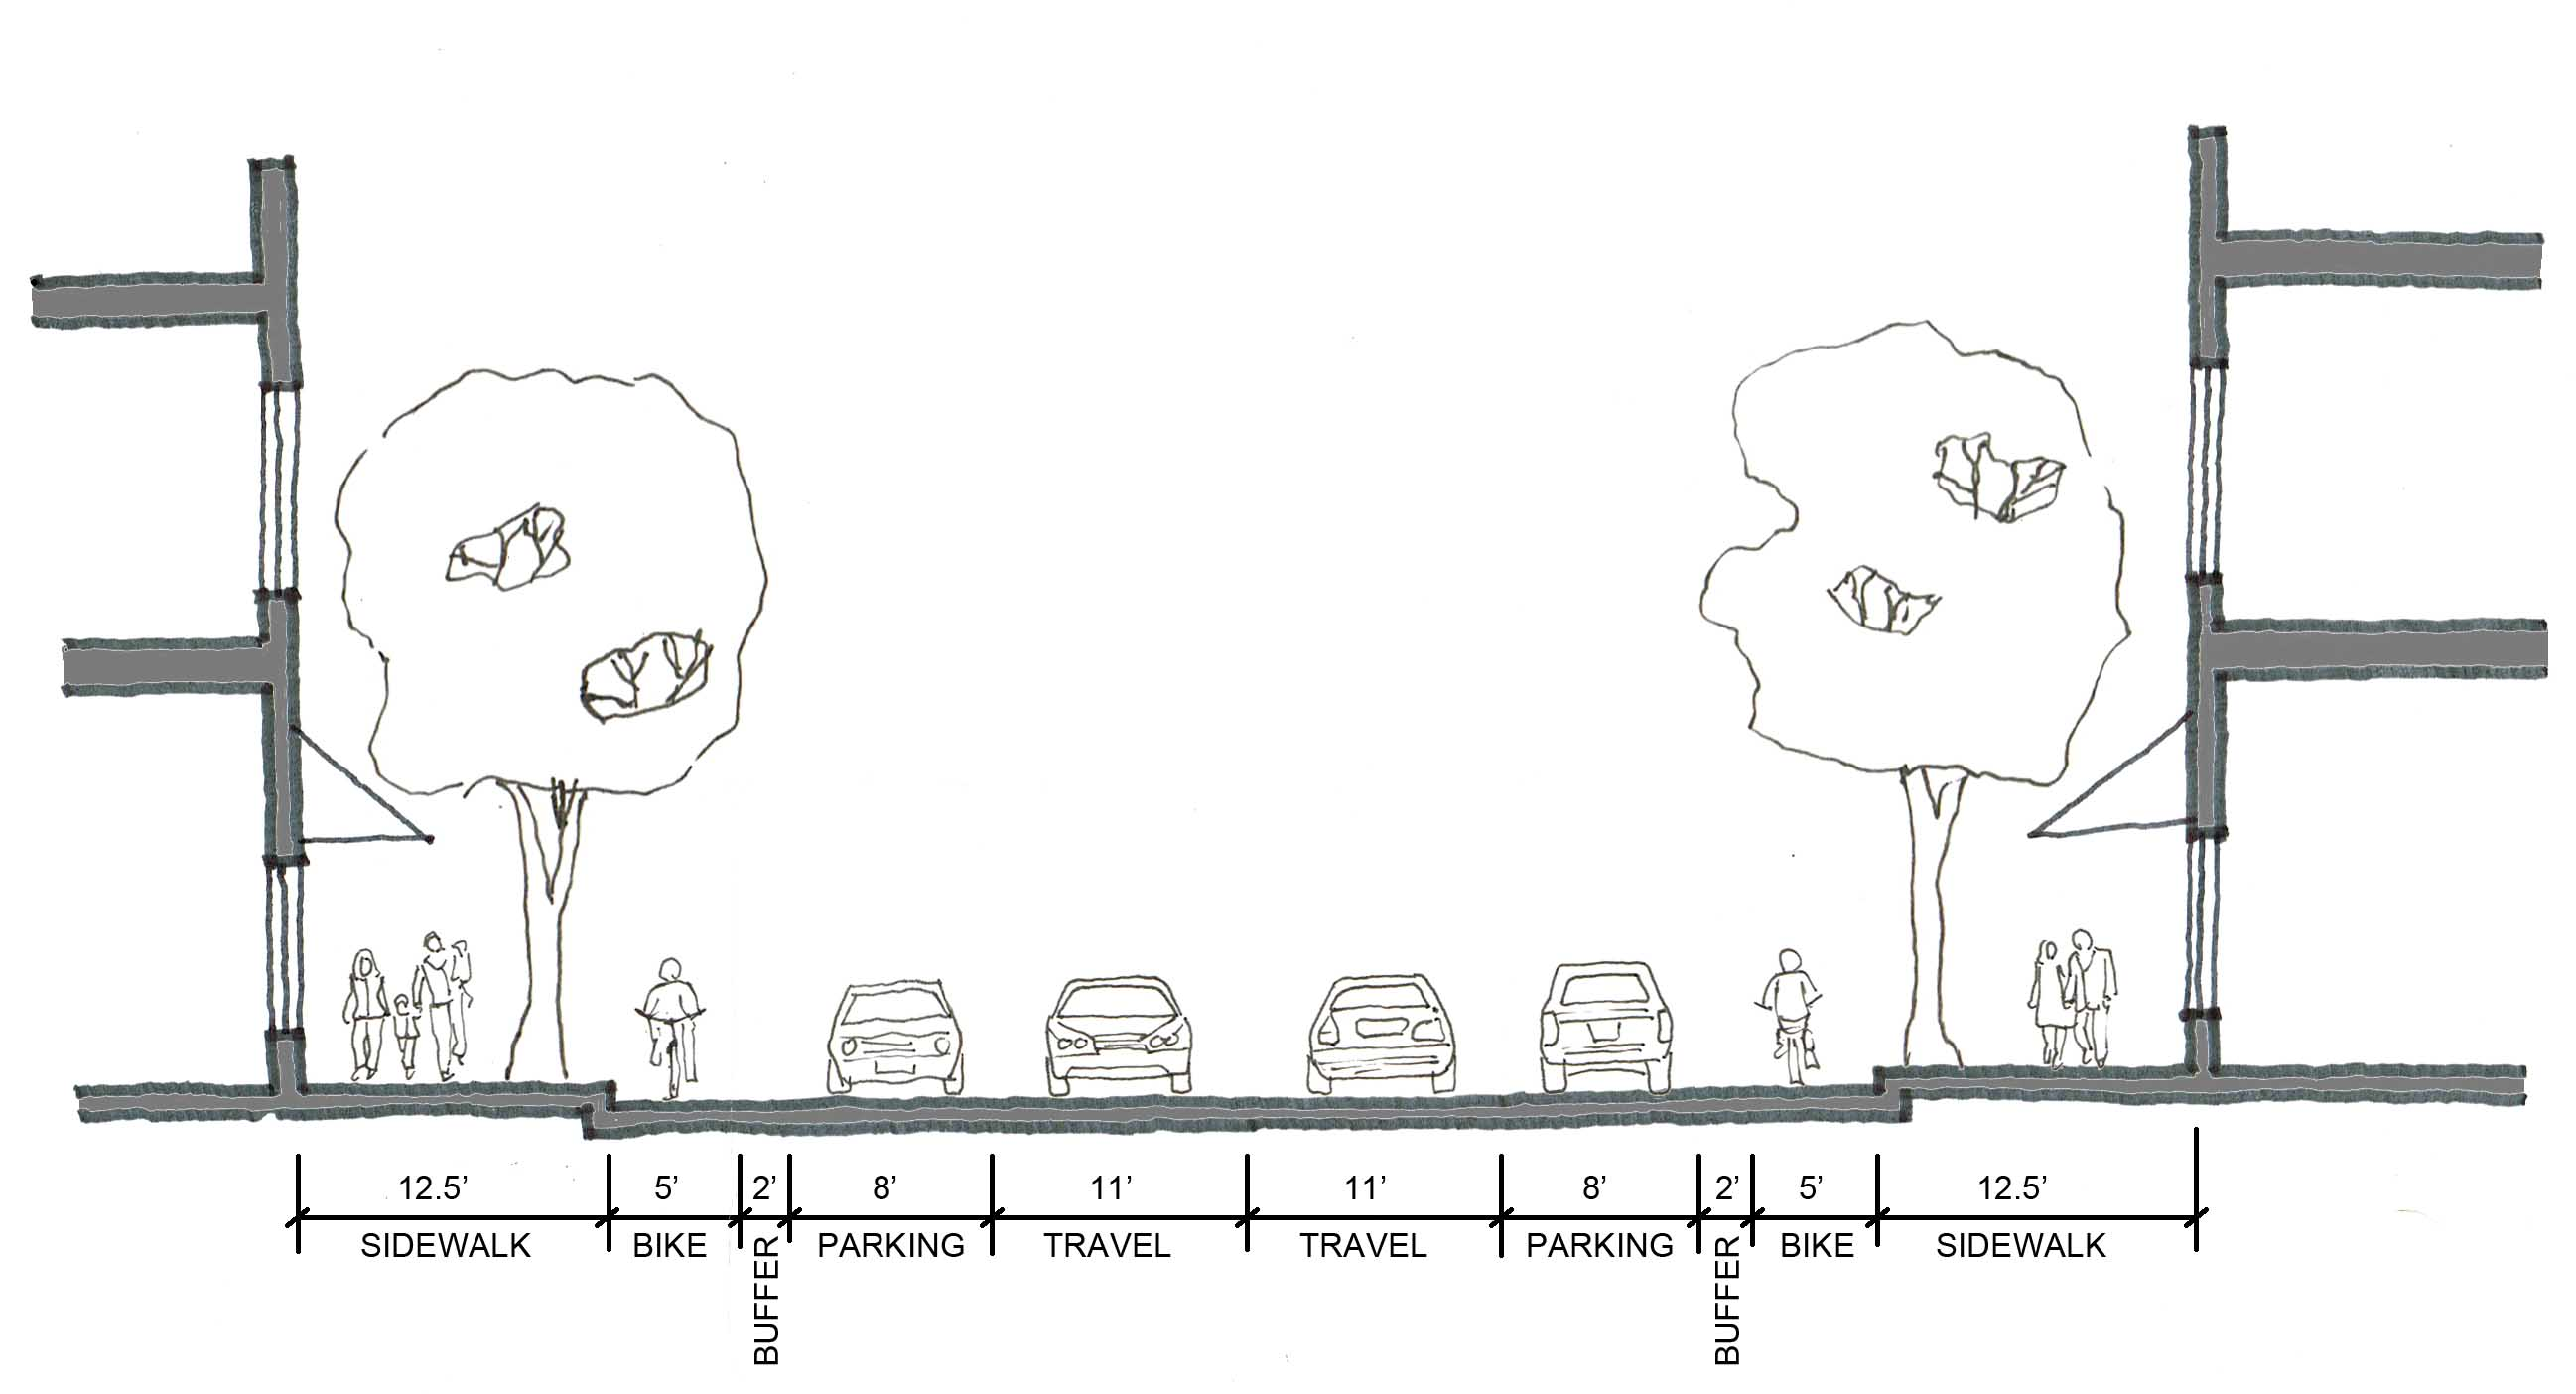 small town urbanism » Not a place for people